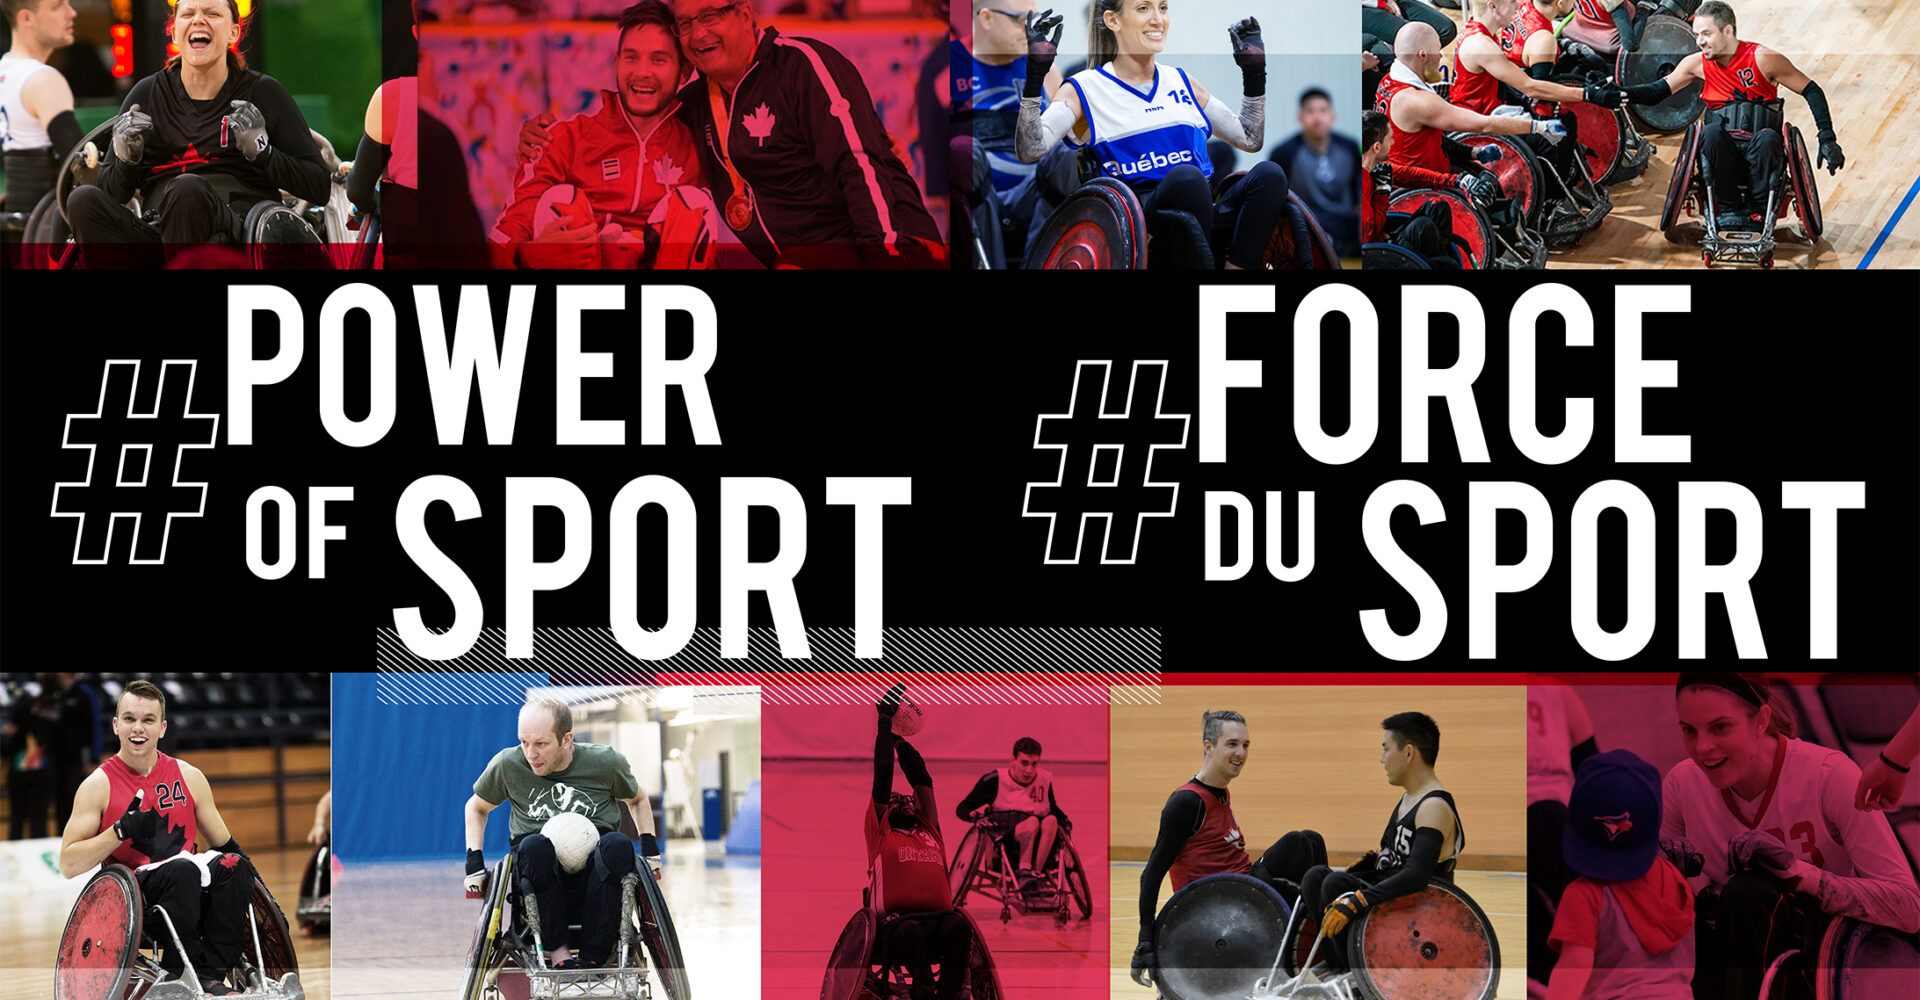 CANADIANS TO CONNECT THROUGH #POWEROFSPORT